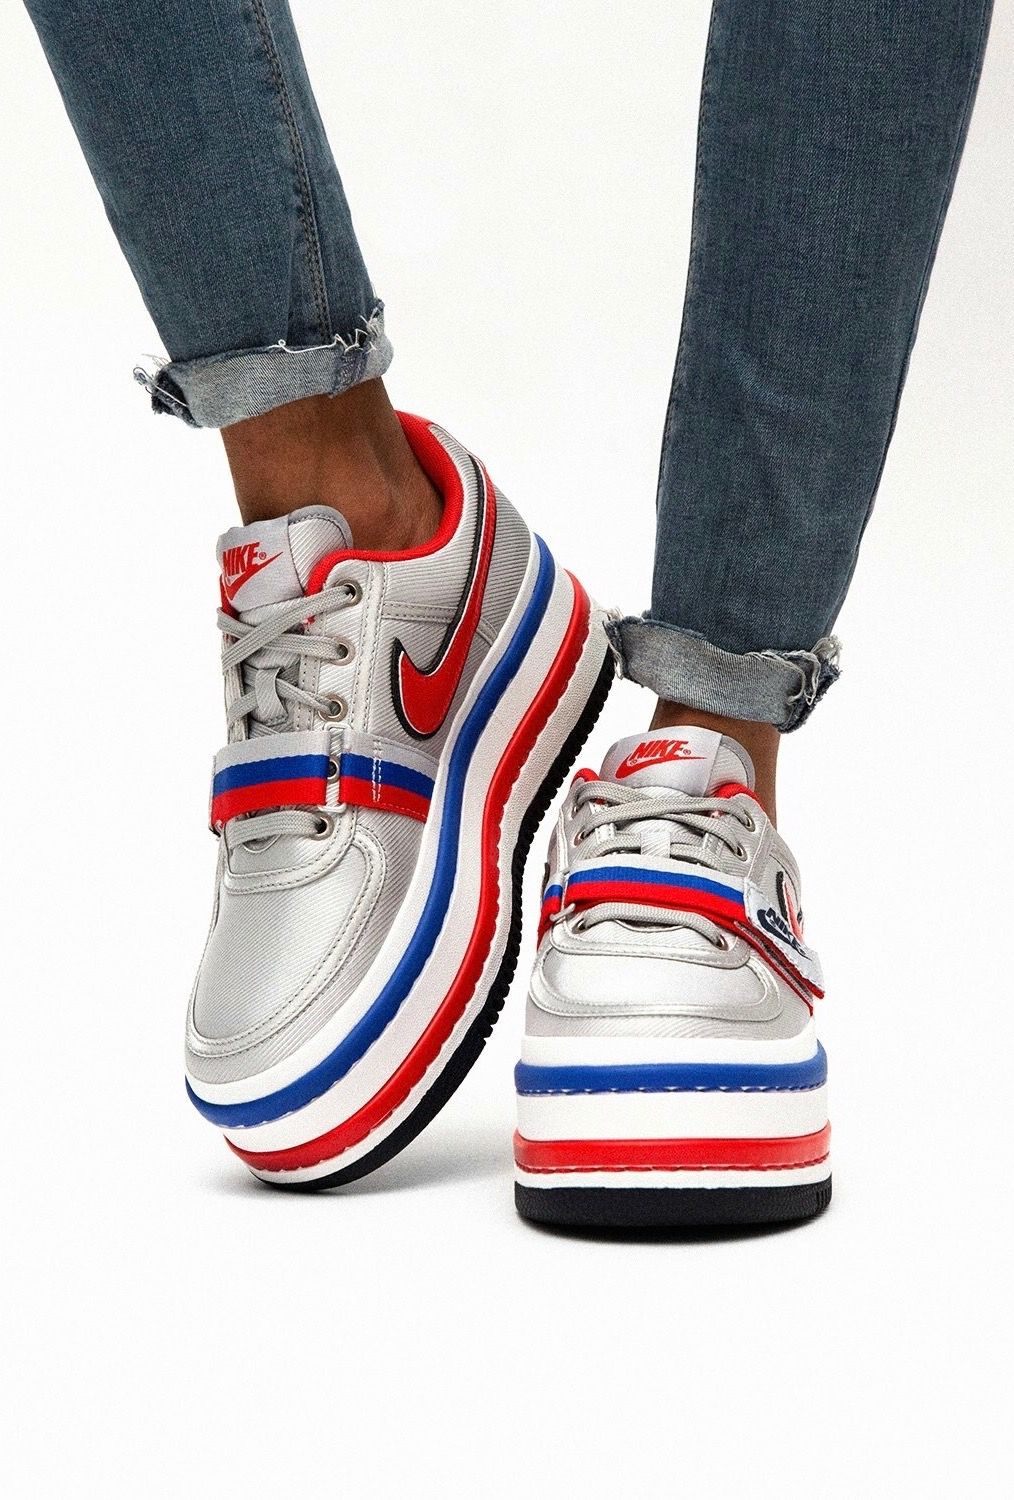 super popular b22b2 80d69 Nike wmns Vandal 2k. Find this Pin and ...